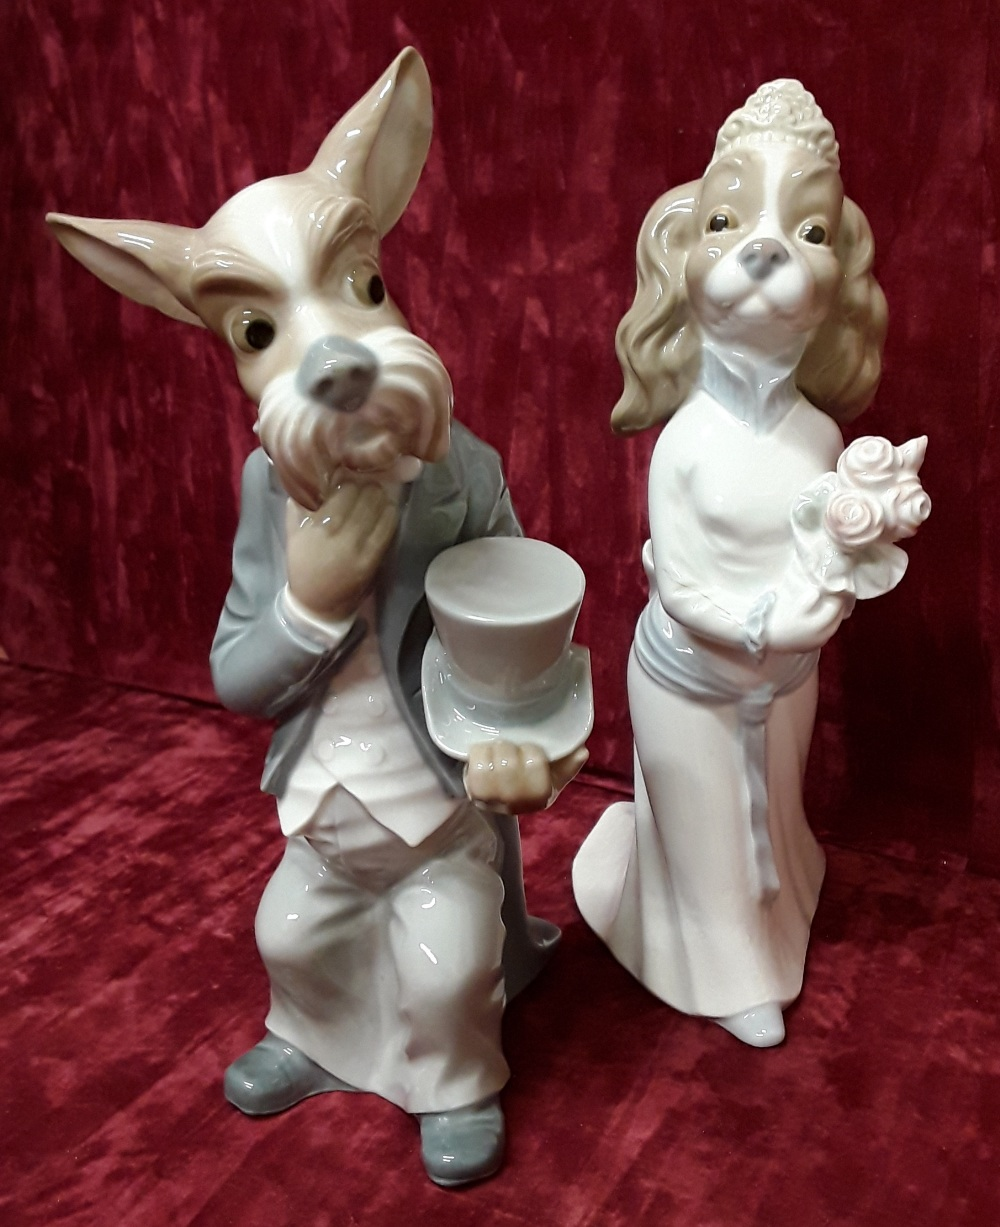 Lot 32 - A pair of Nao figurines showing dogs as bride and groom.